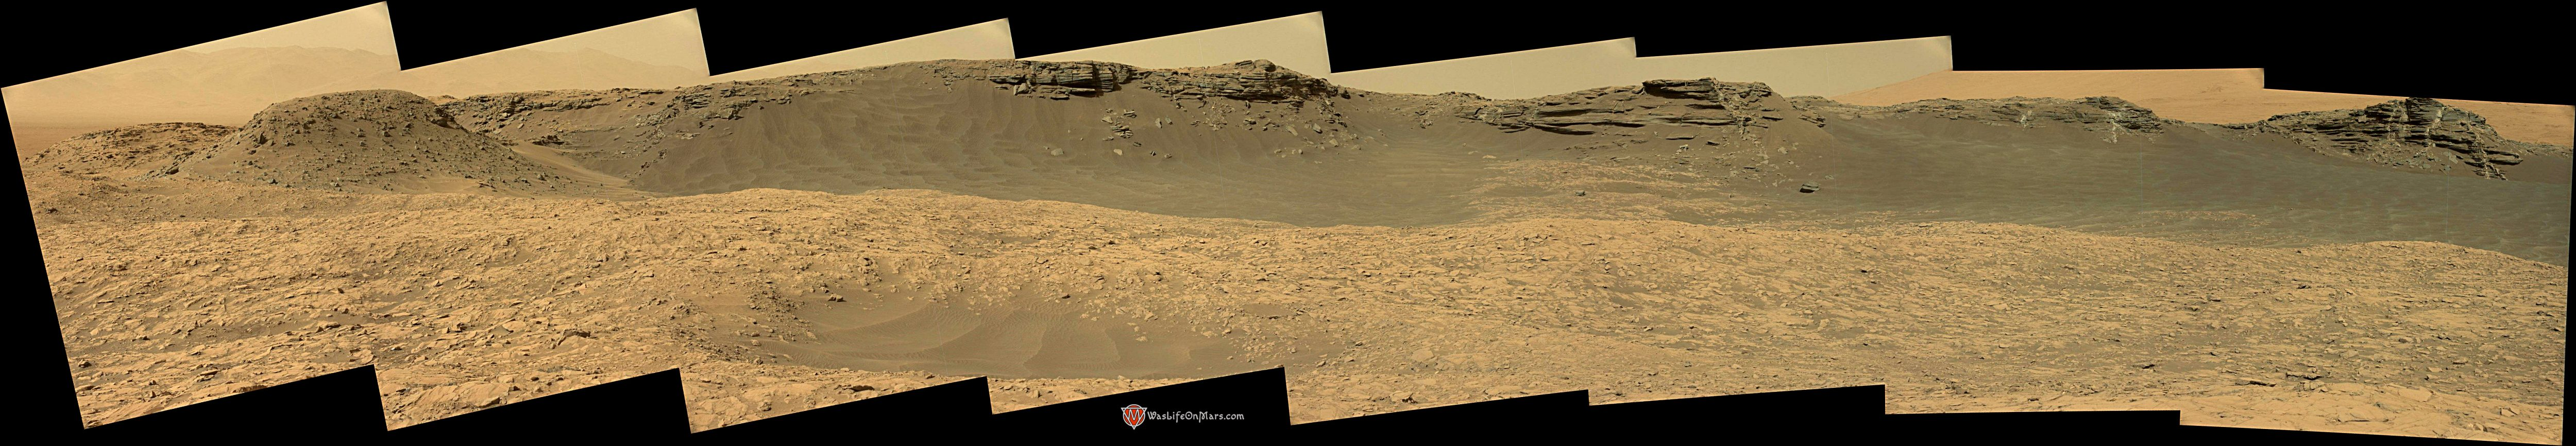 Curiosity Rover Composite View 1e of Mars Sol 1381 – Click to enlarge